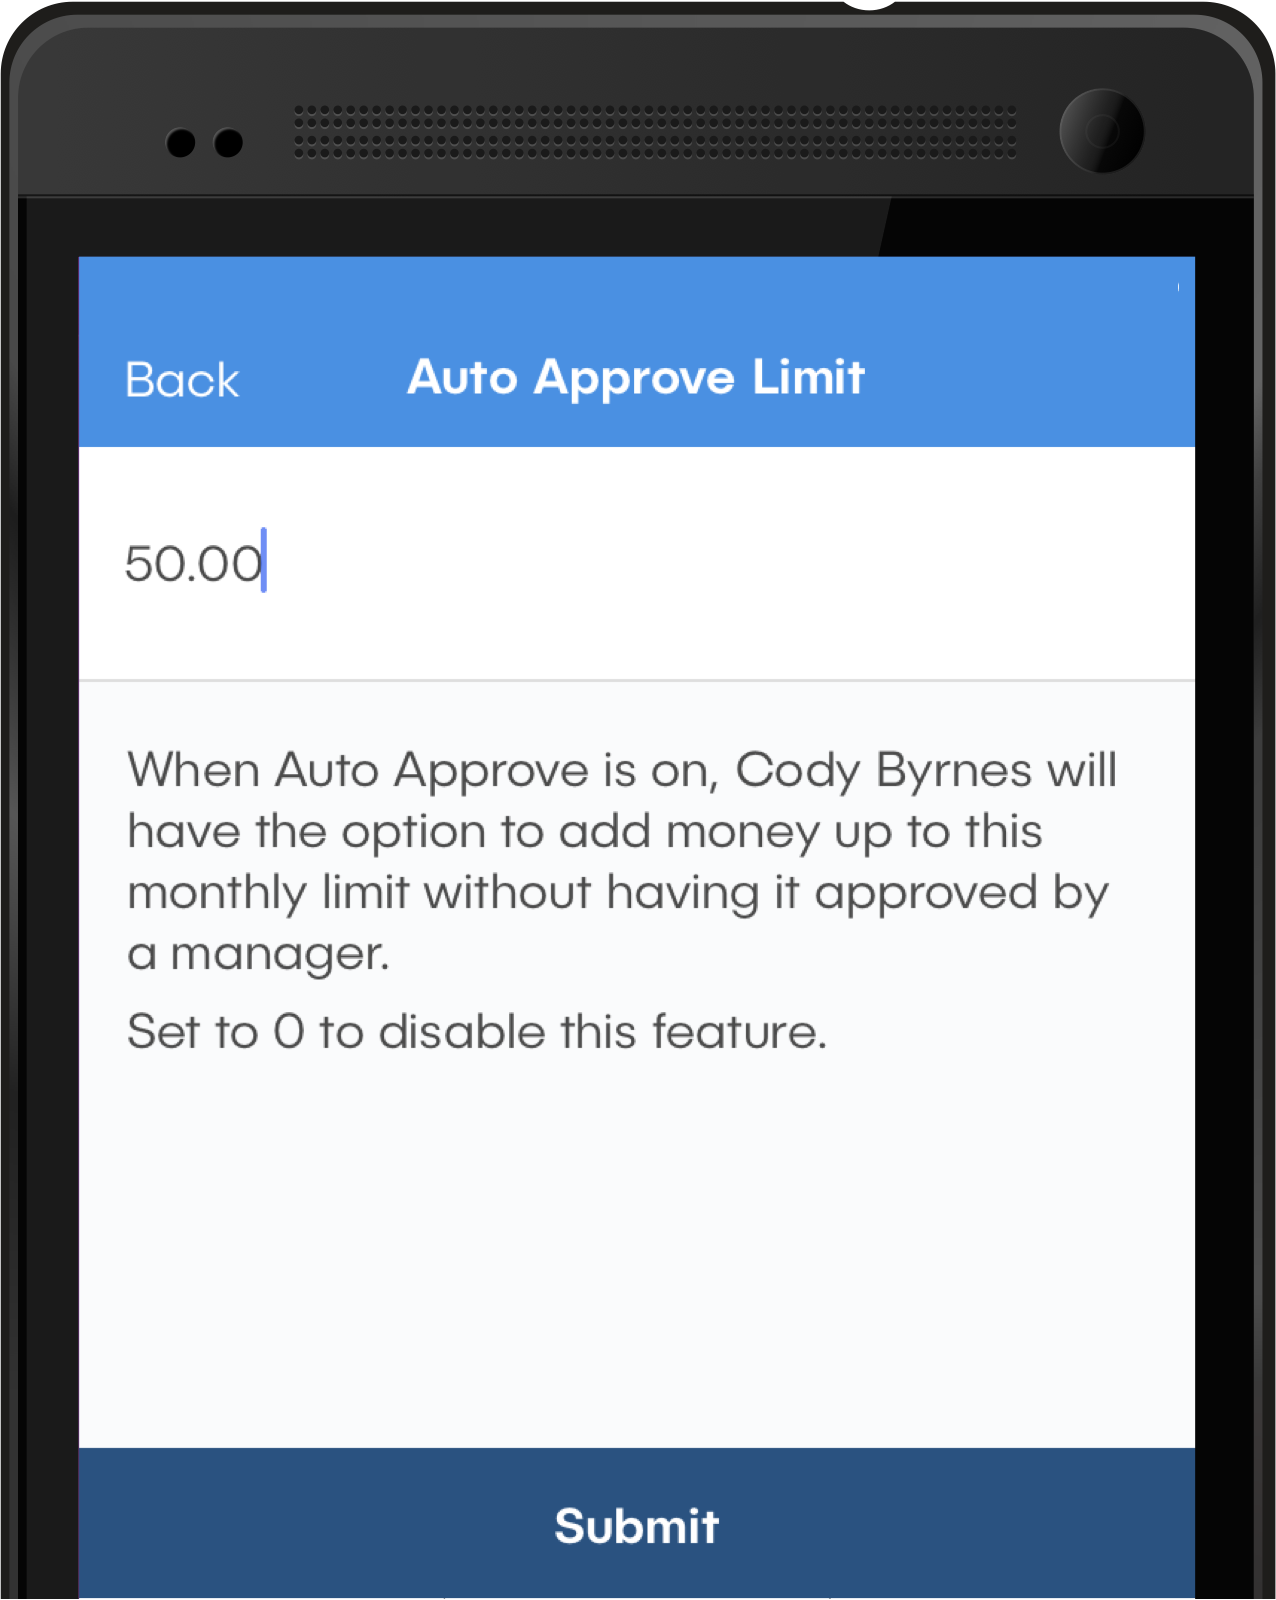 Image of phone running the dash™ app showing the Auto Approve Limit screen. The user has entered a limit of $50.